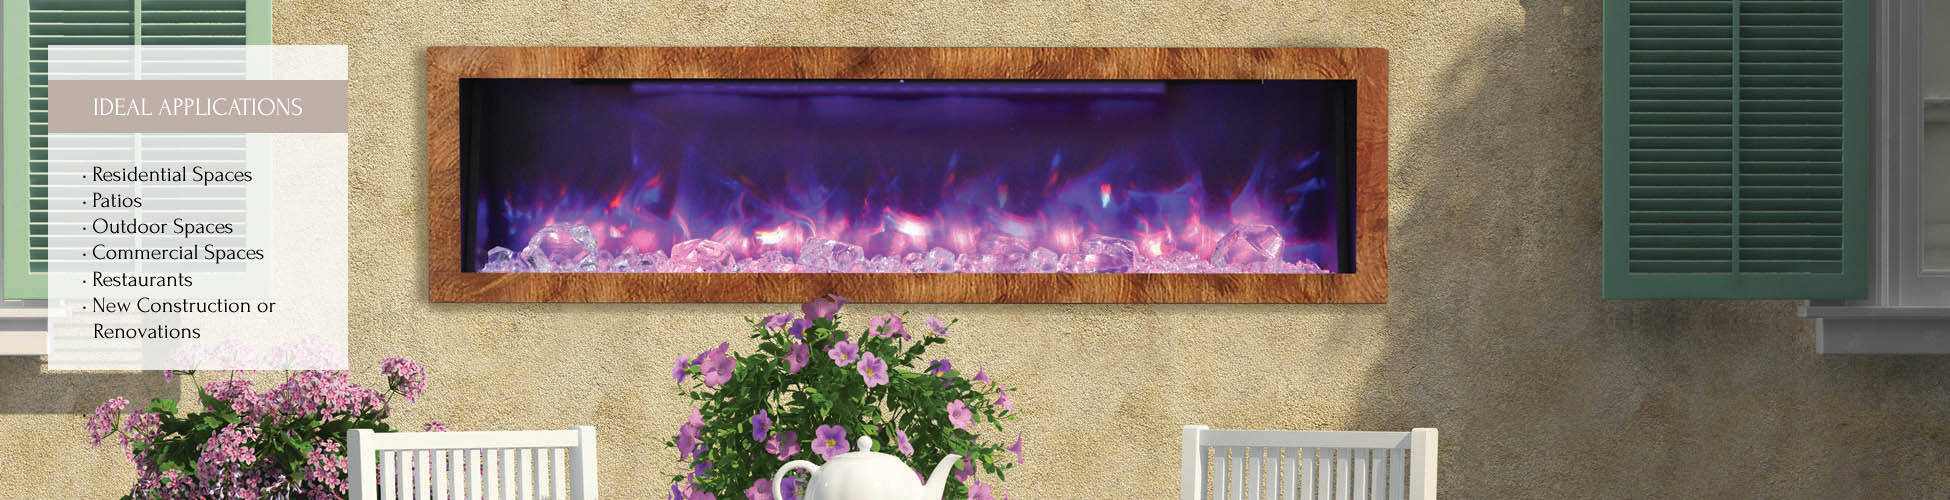 Outdoor elecltric fireplace